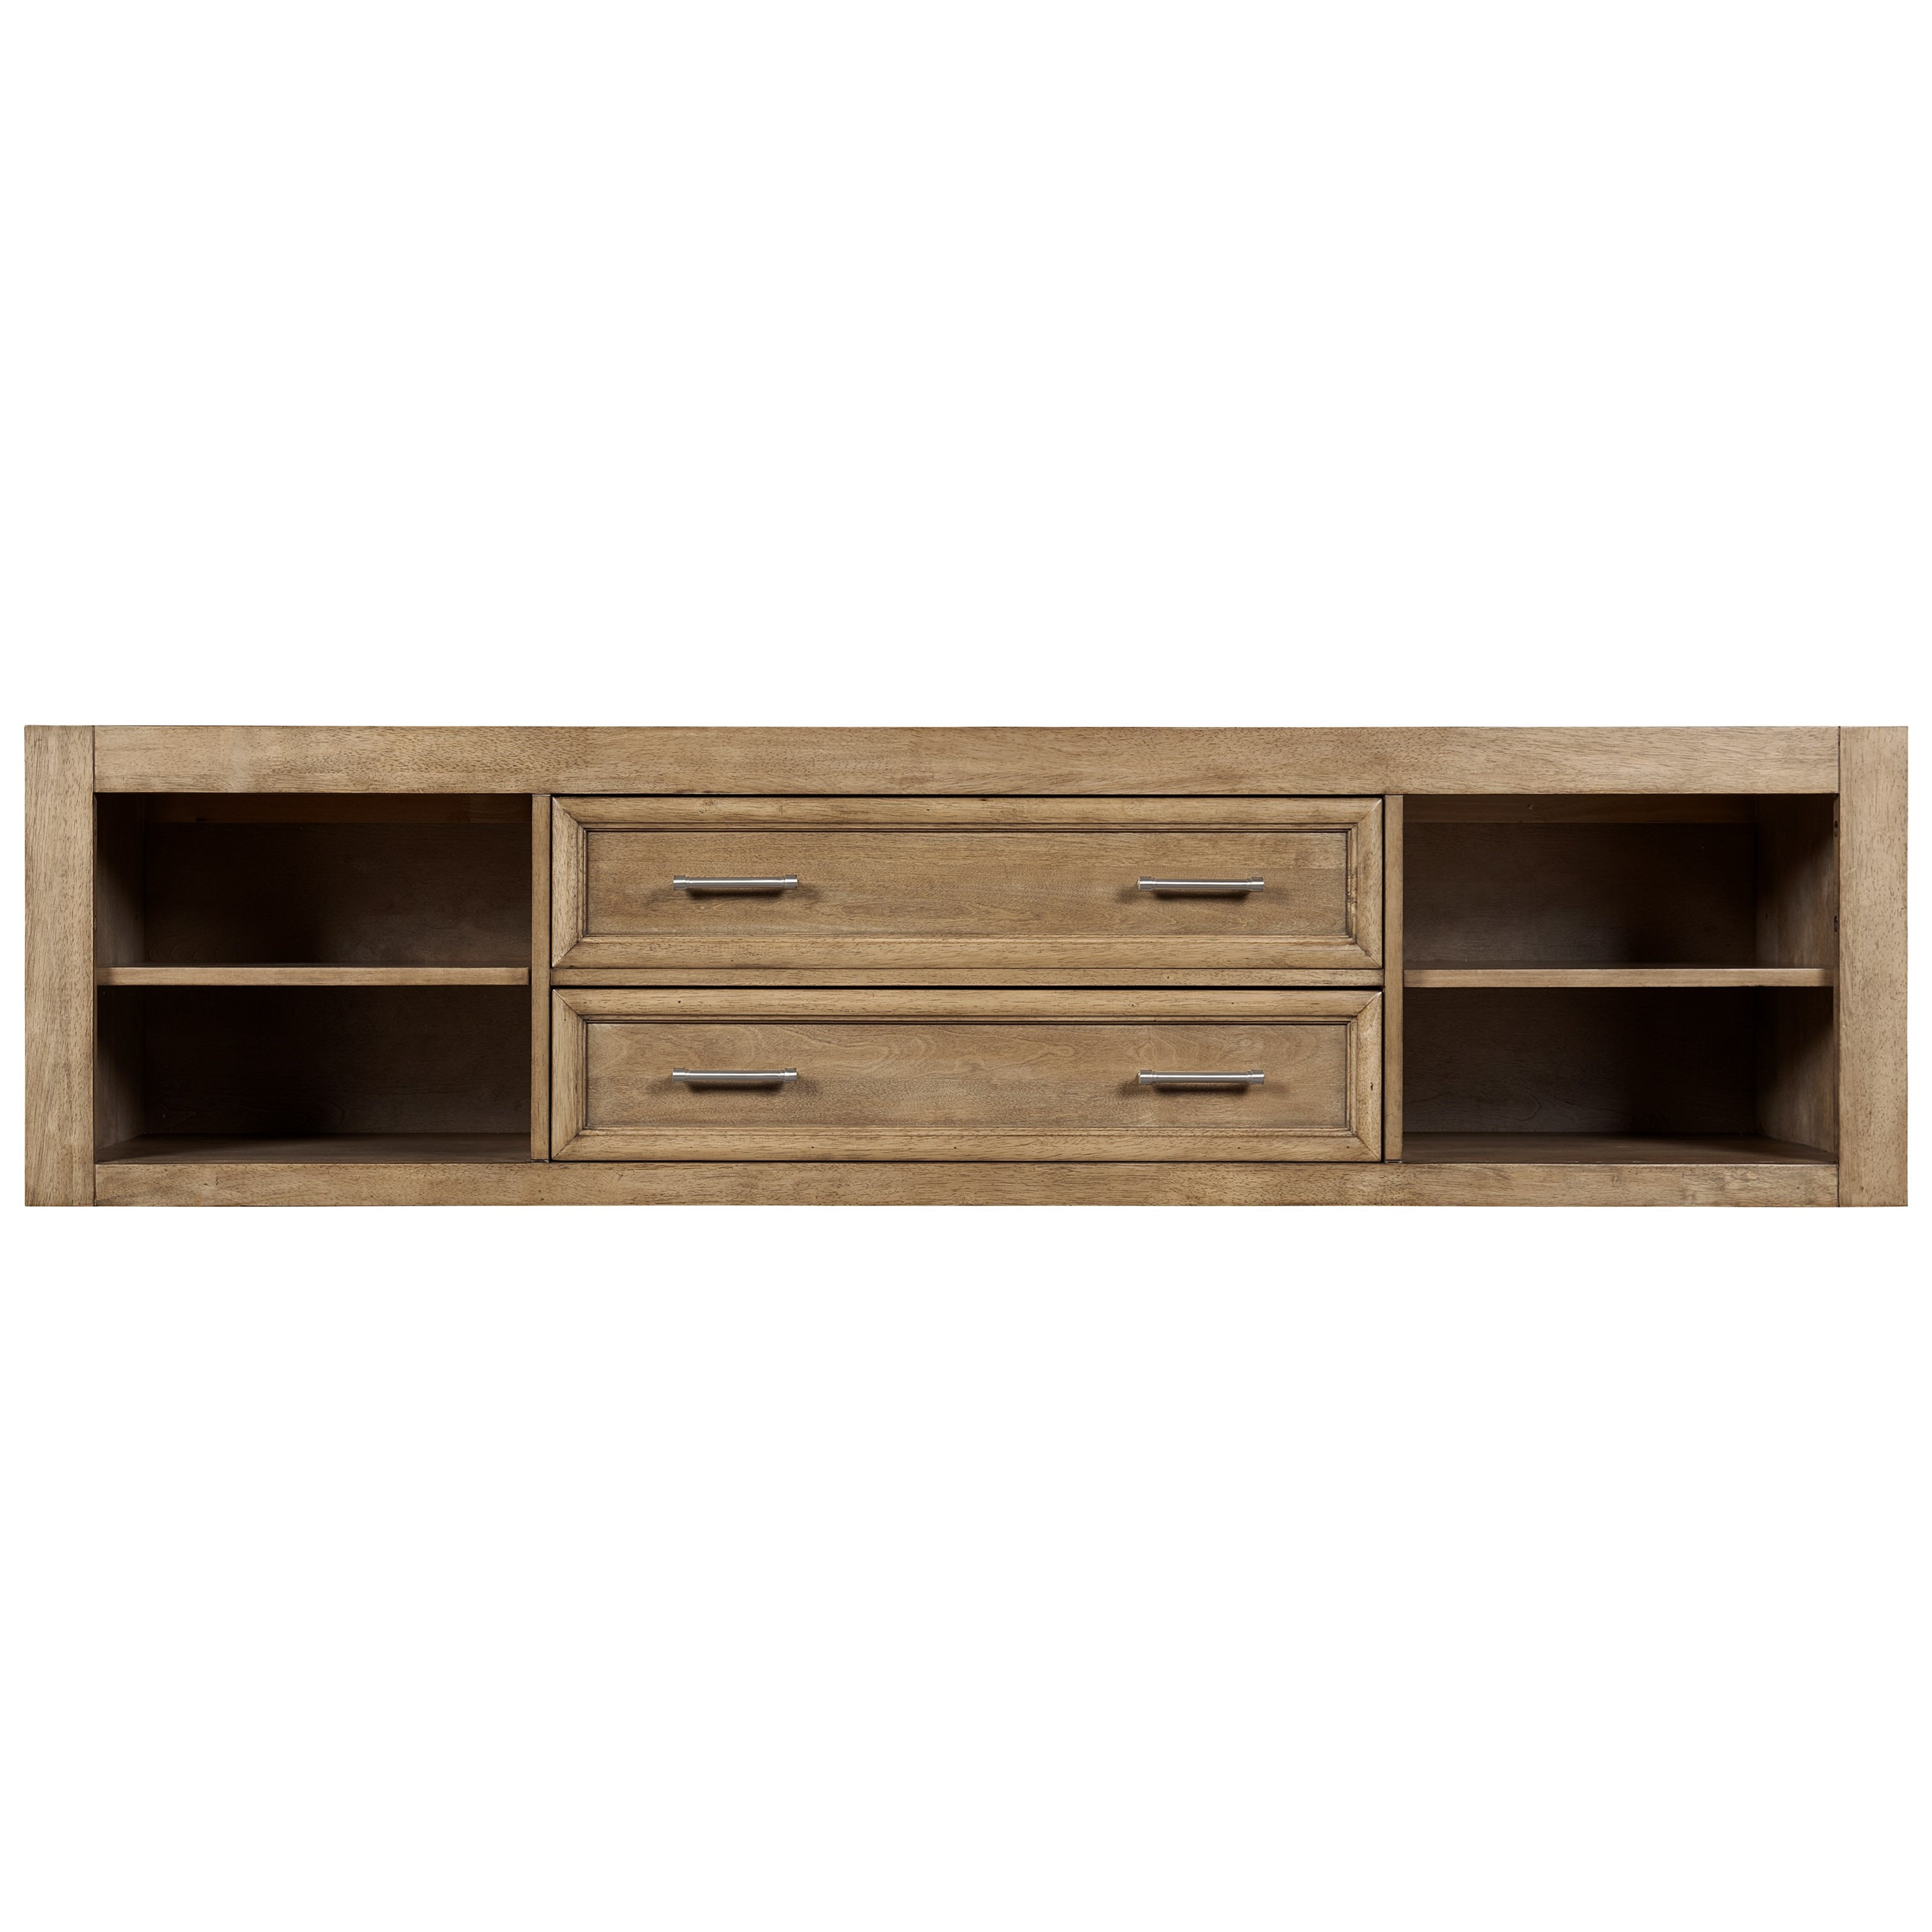 Stone & Leigh Furniture Chelsea Square Underbed Storage - Item Number: 584-63-66